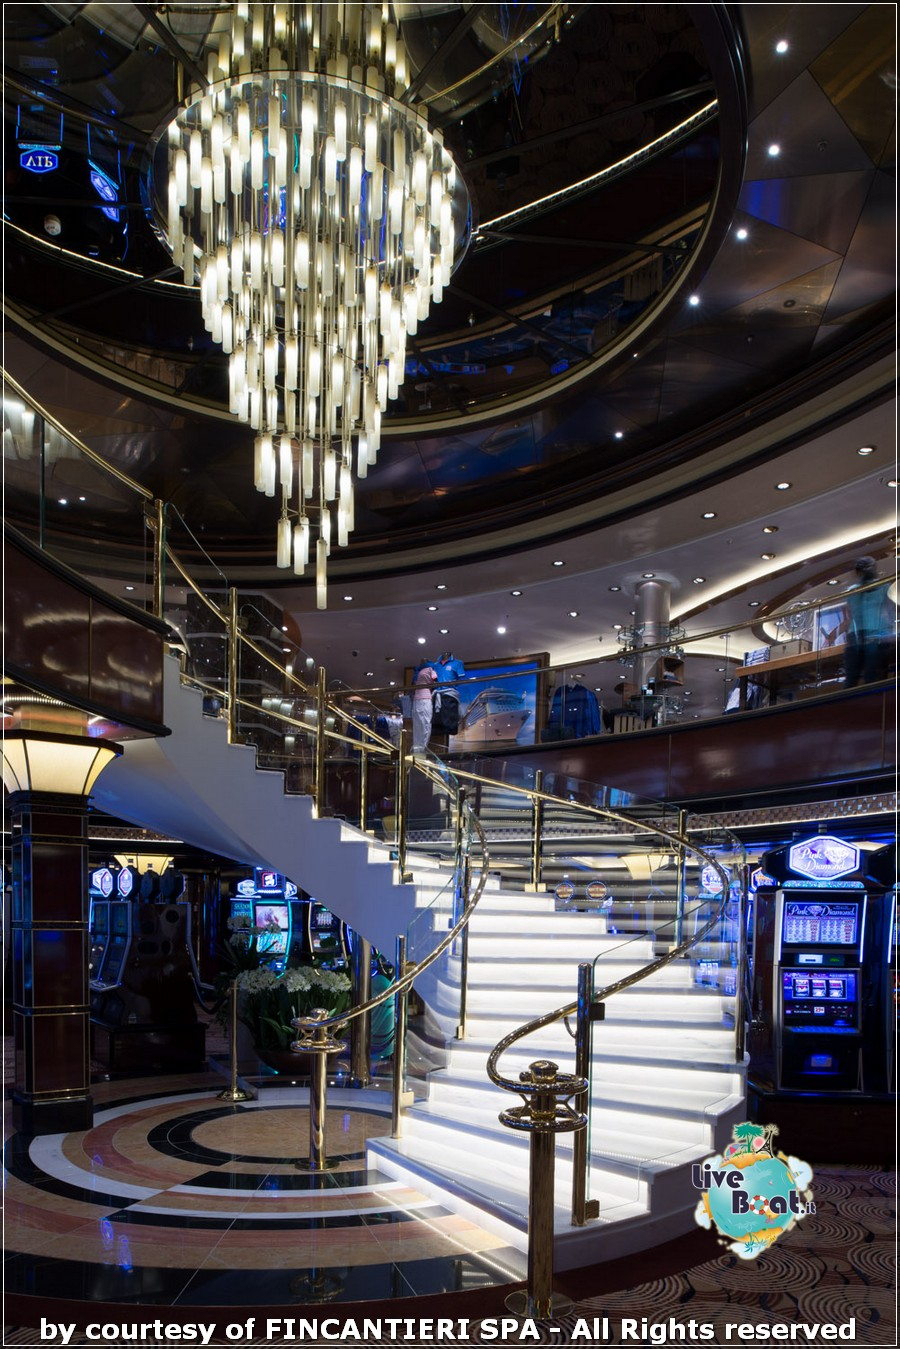 Foto nave Regal Princess-10regalprincess-fiincantieri-princesscruises-jpg